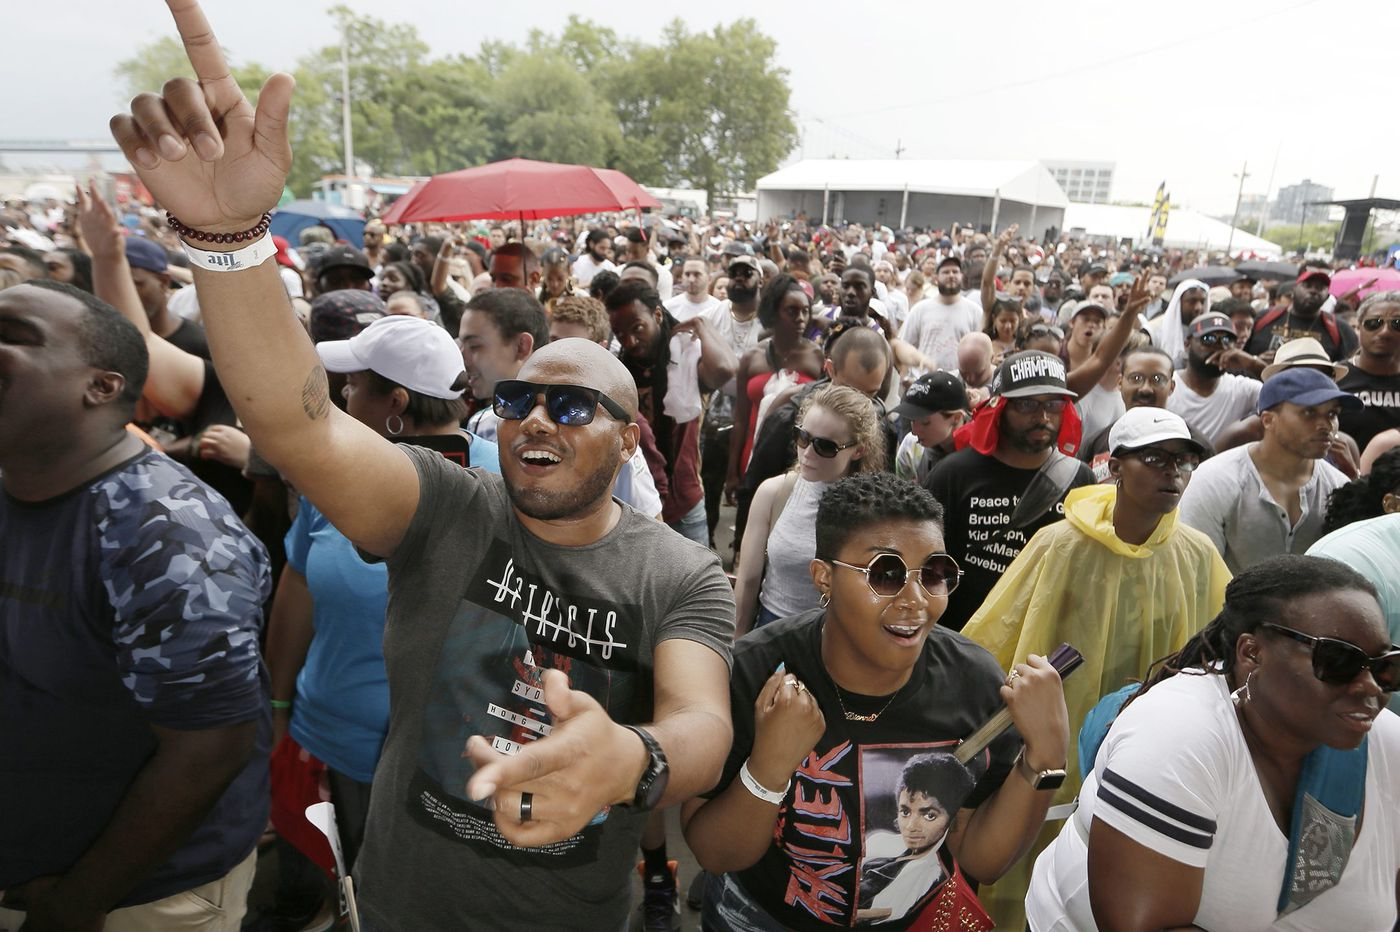 Roots Picnic ends early due to weather